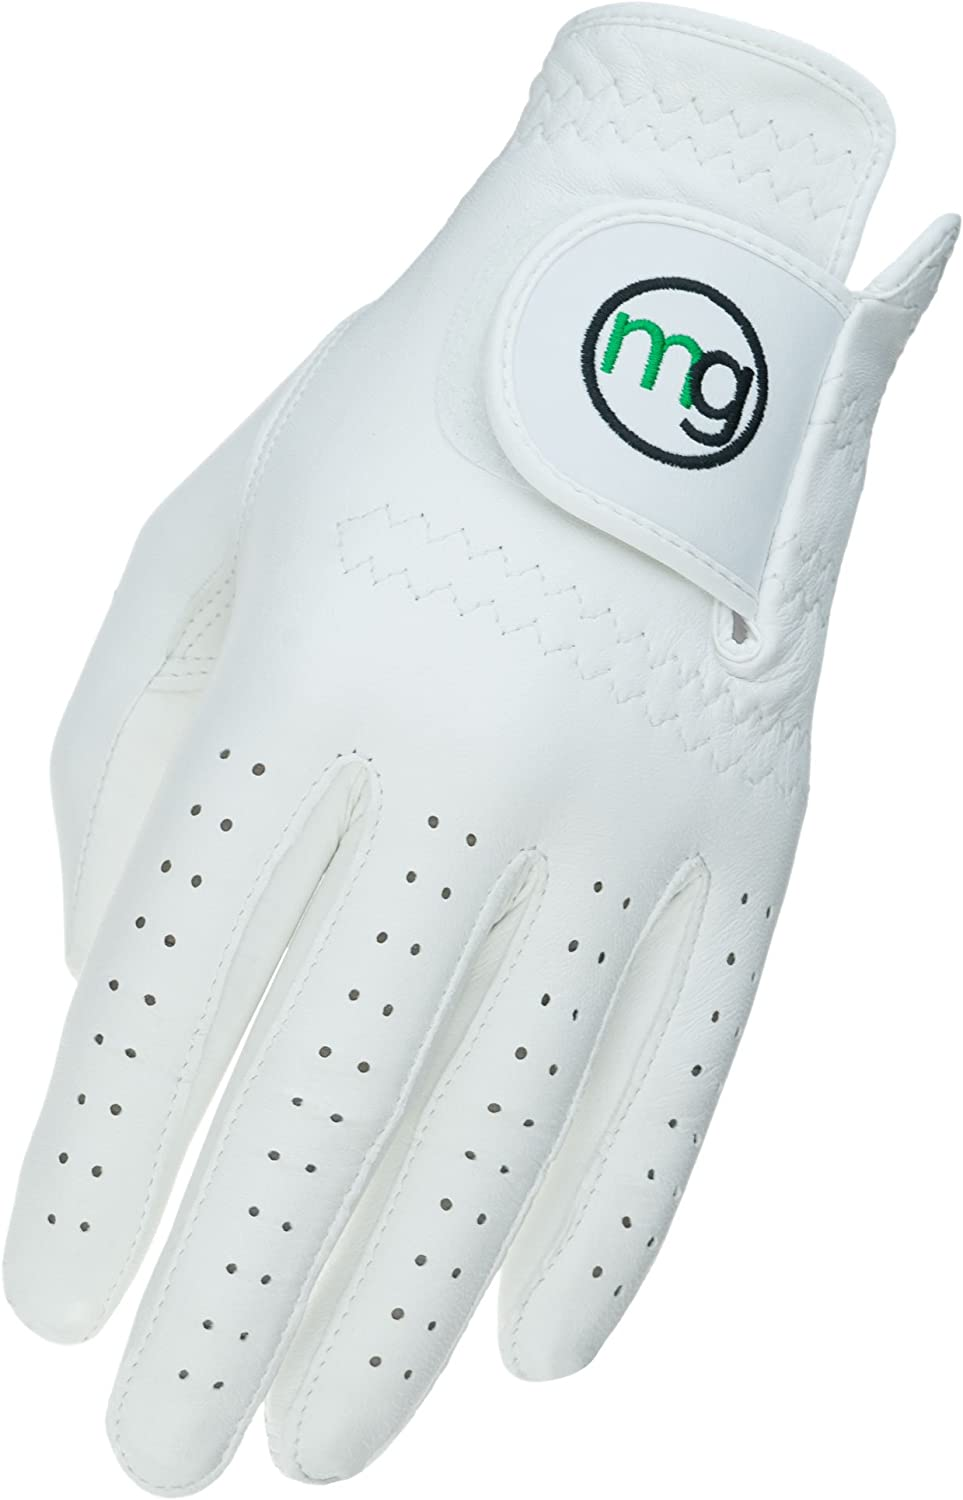 MG Golf Glove Ladies DynaGrip All-Cabretta Leather